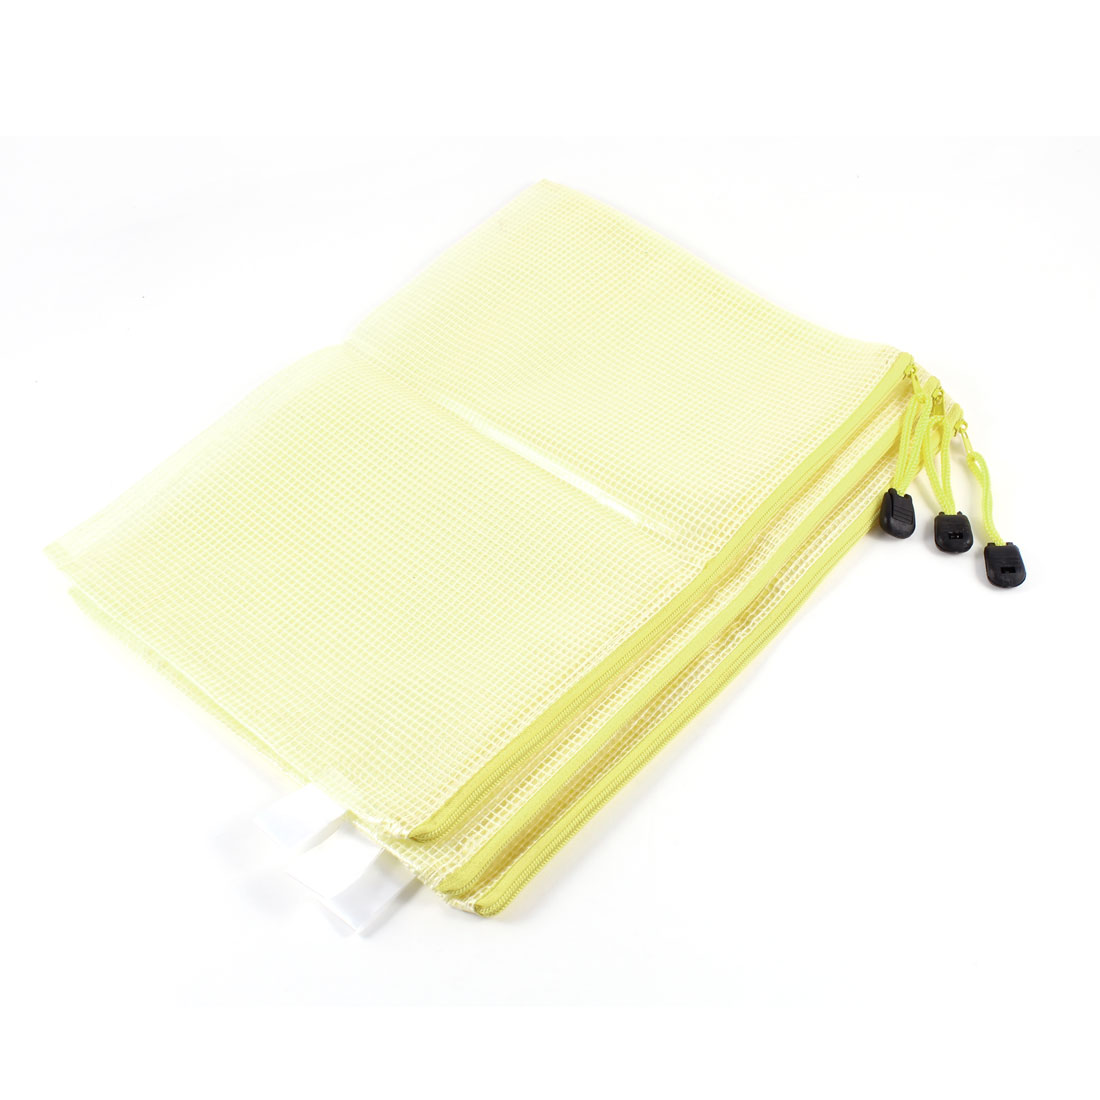 3 Pcs Zippered Soft Plastic 29.5 x 21.4cm Clear Yellow File Bag for B5 Paper